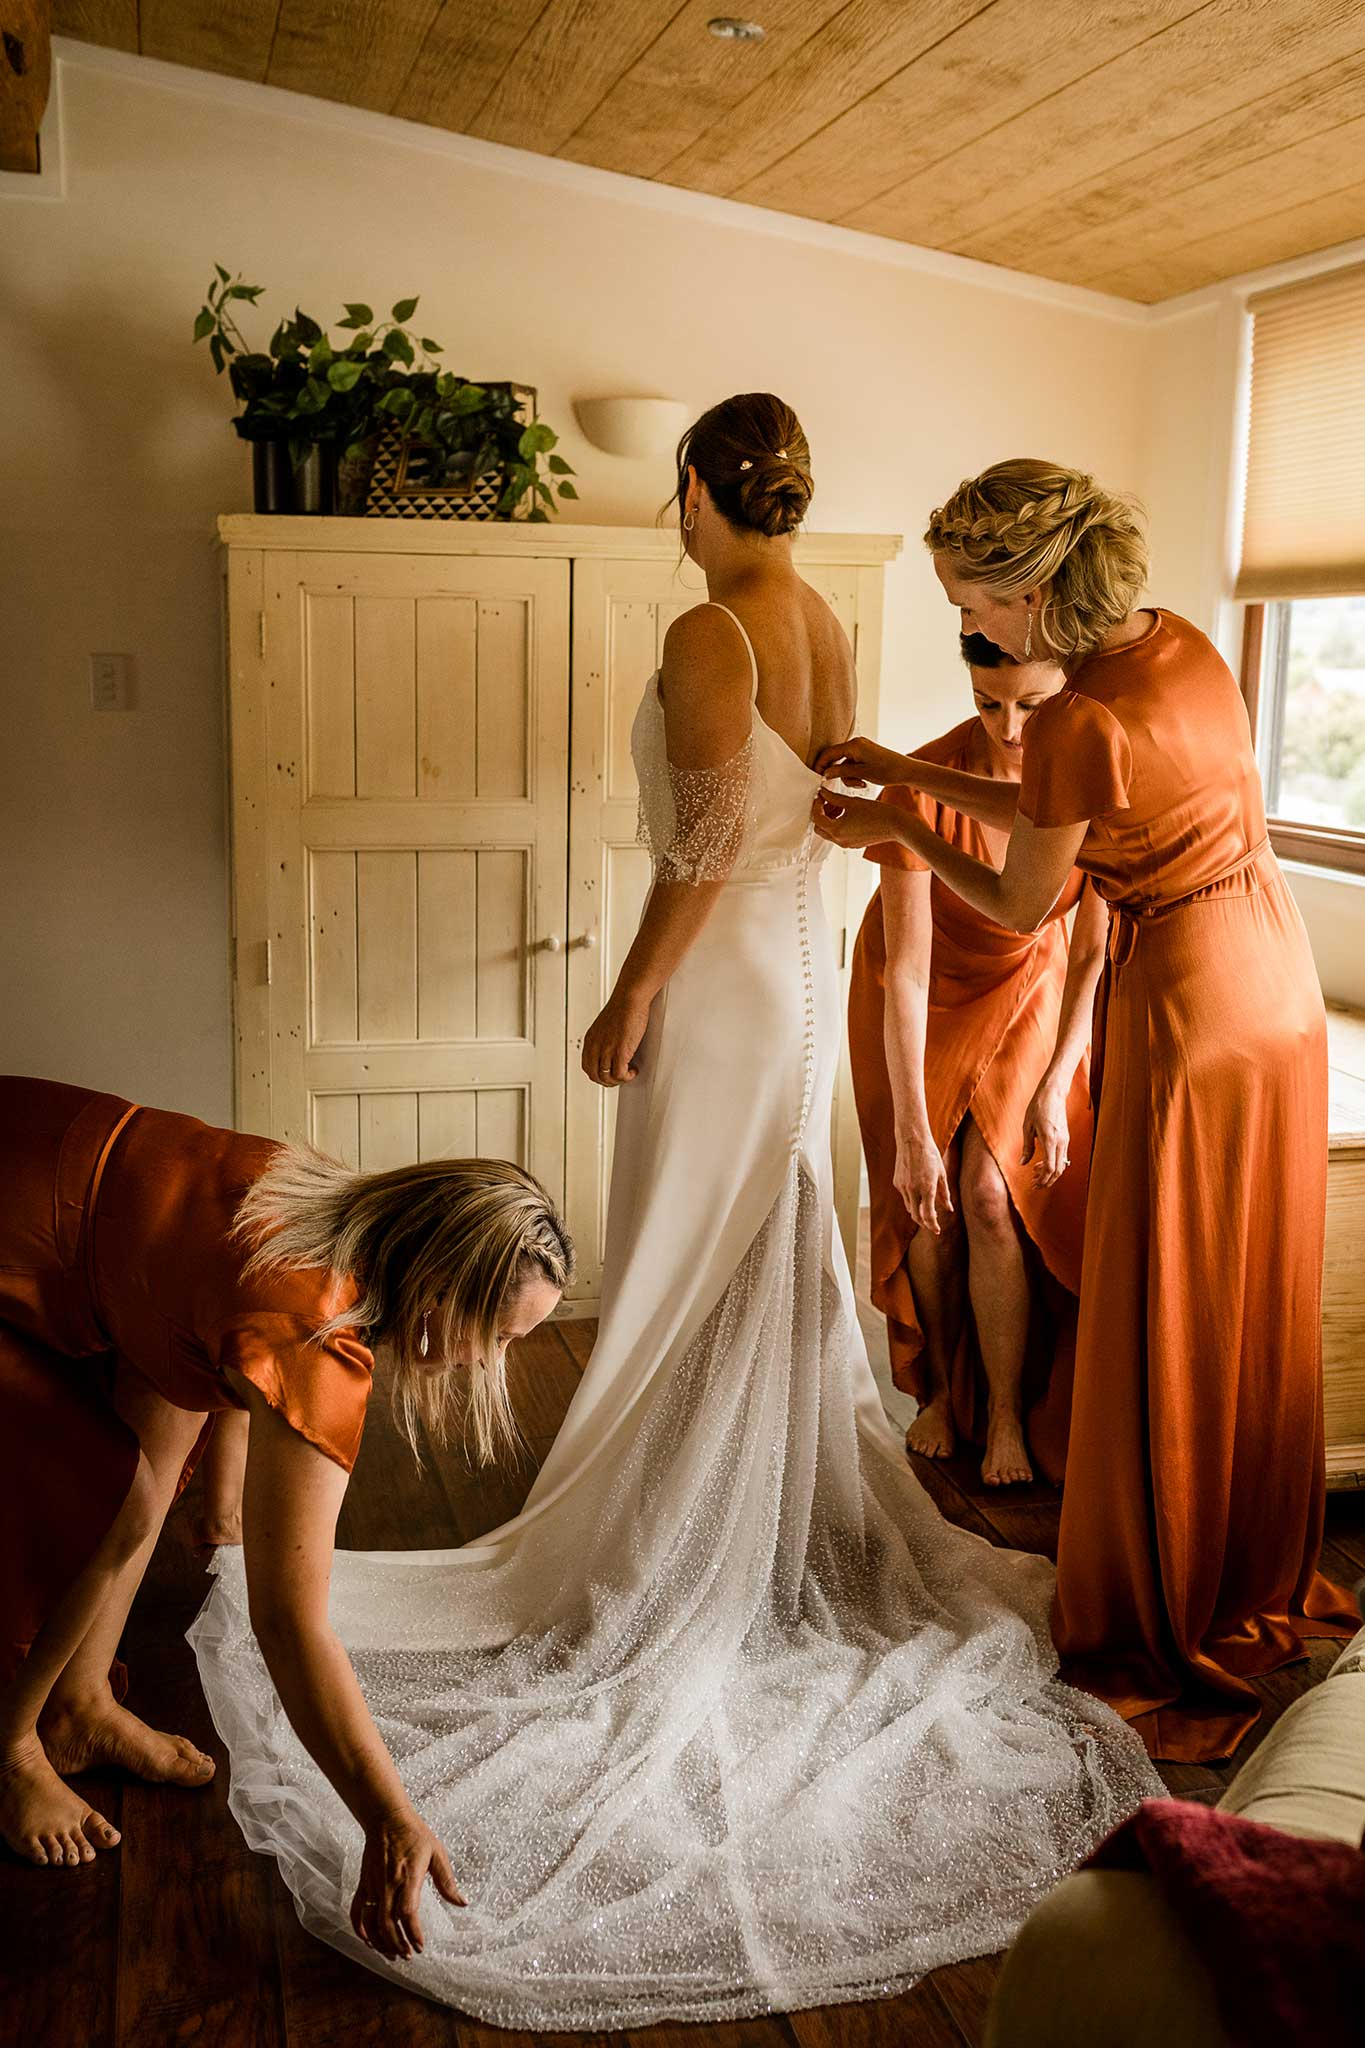 Getting Ready for your wedding - Susan Miller Photography